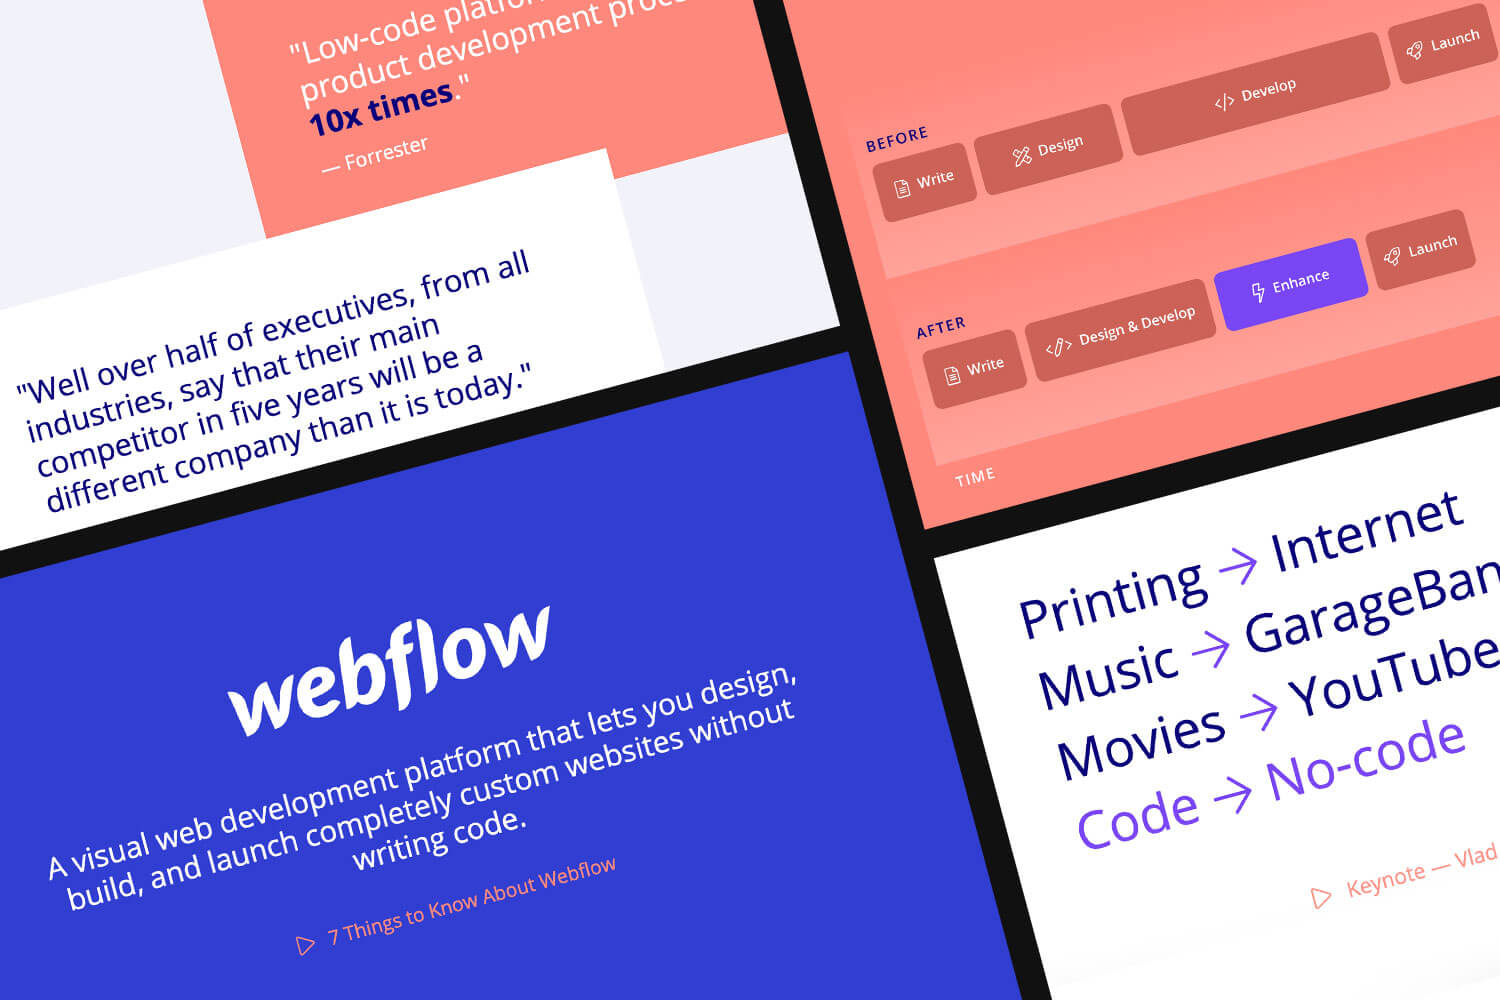 Examples slides from presentation like the definition of Webflow, process, and quotes